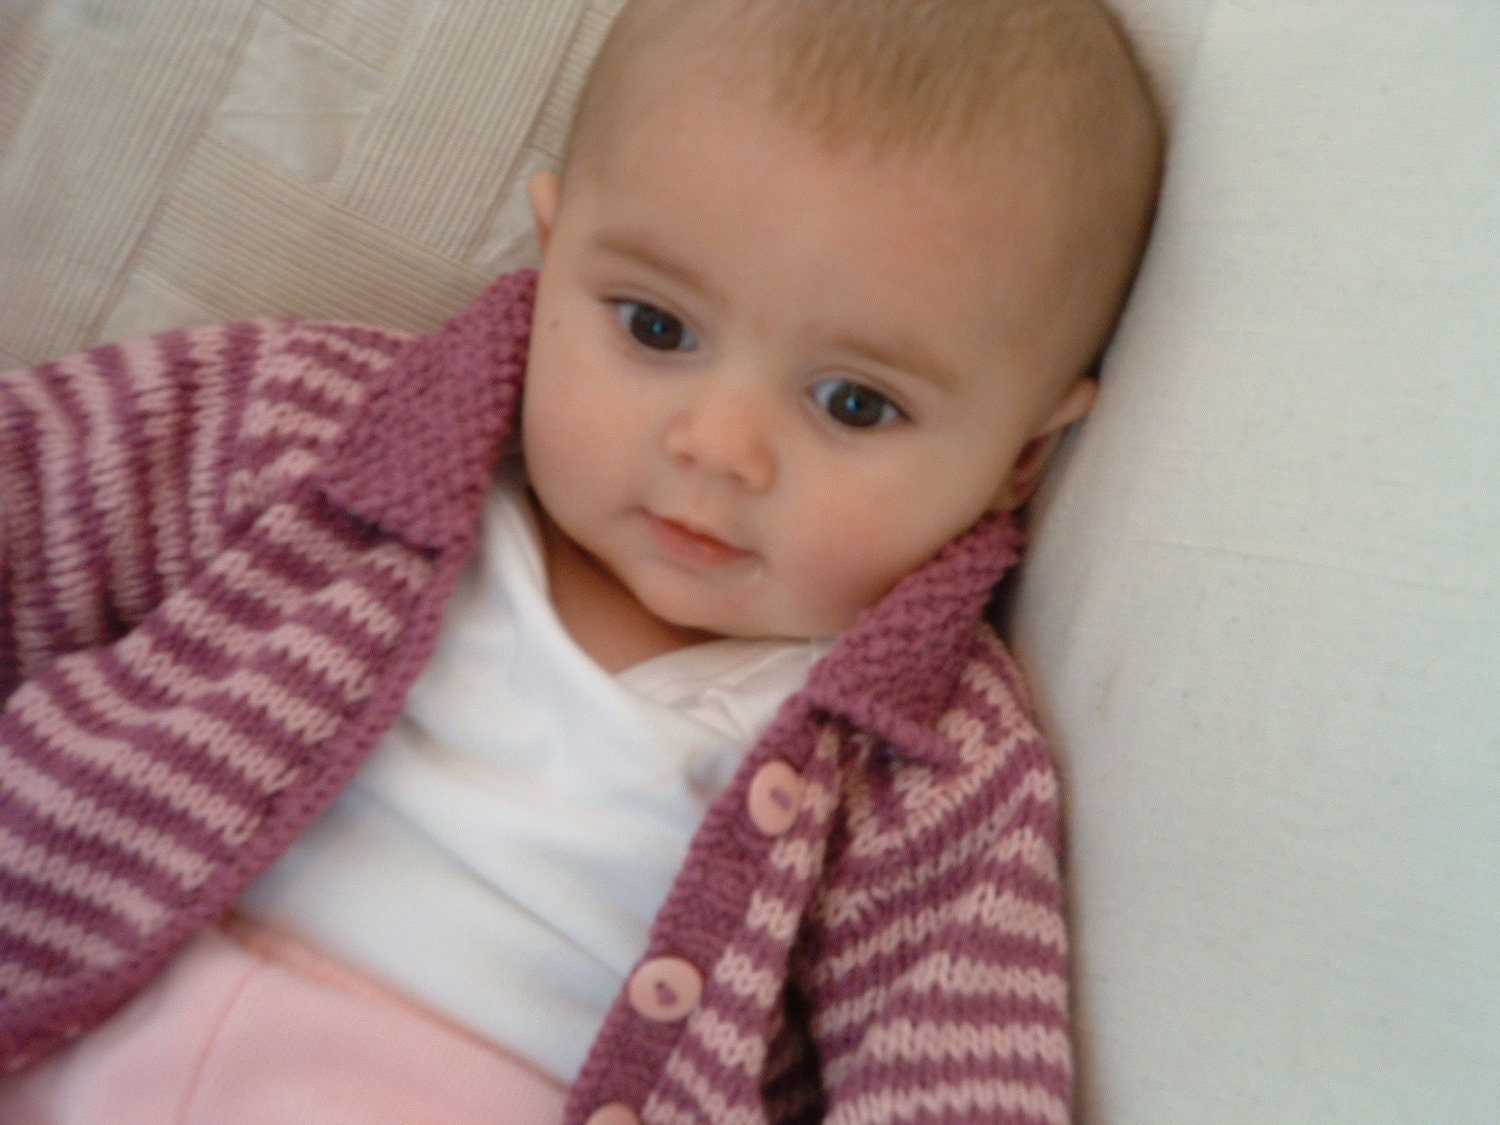 Baby Girl Knitted Sweater Pattern : KNIT PATTERN BABY CARDIGAN - FREE PATTERNS